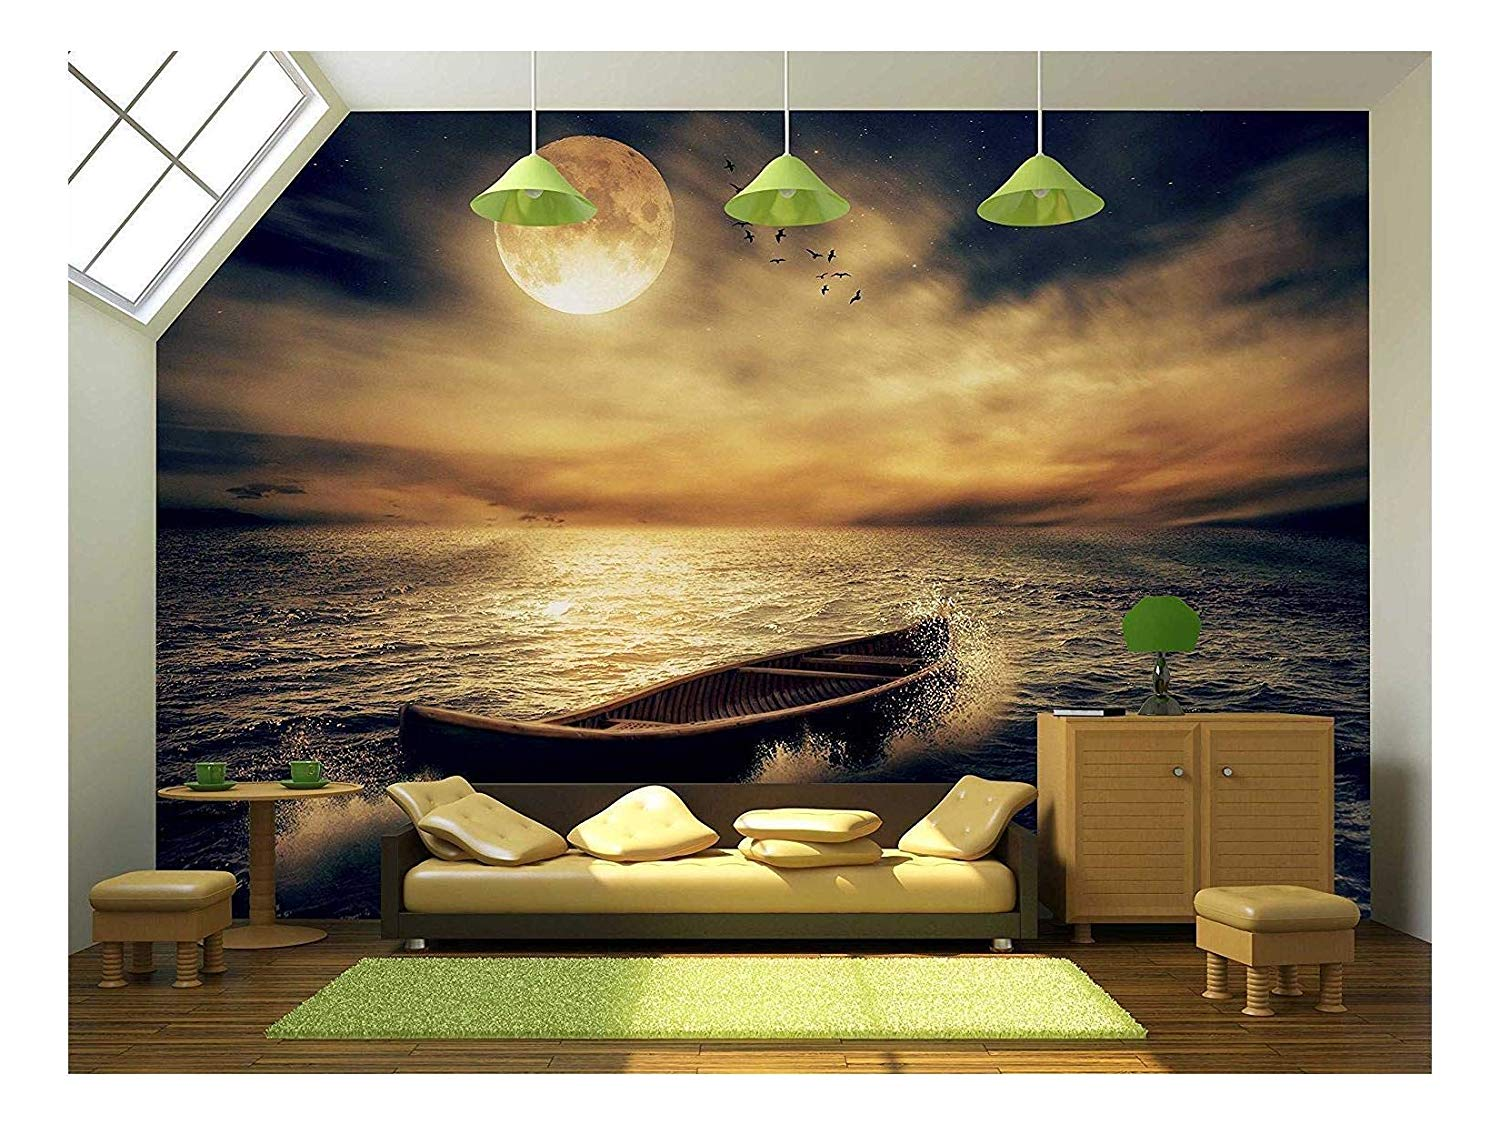 wall26 - Boat Drifting Away from Past in Middle of Ocean after Storm - Removable Wall Mural ...